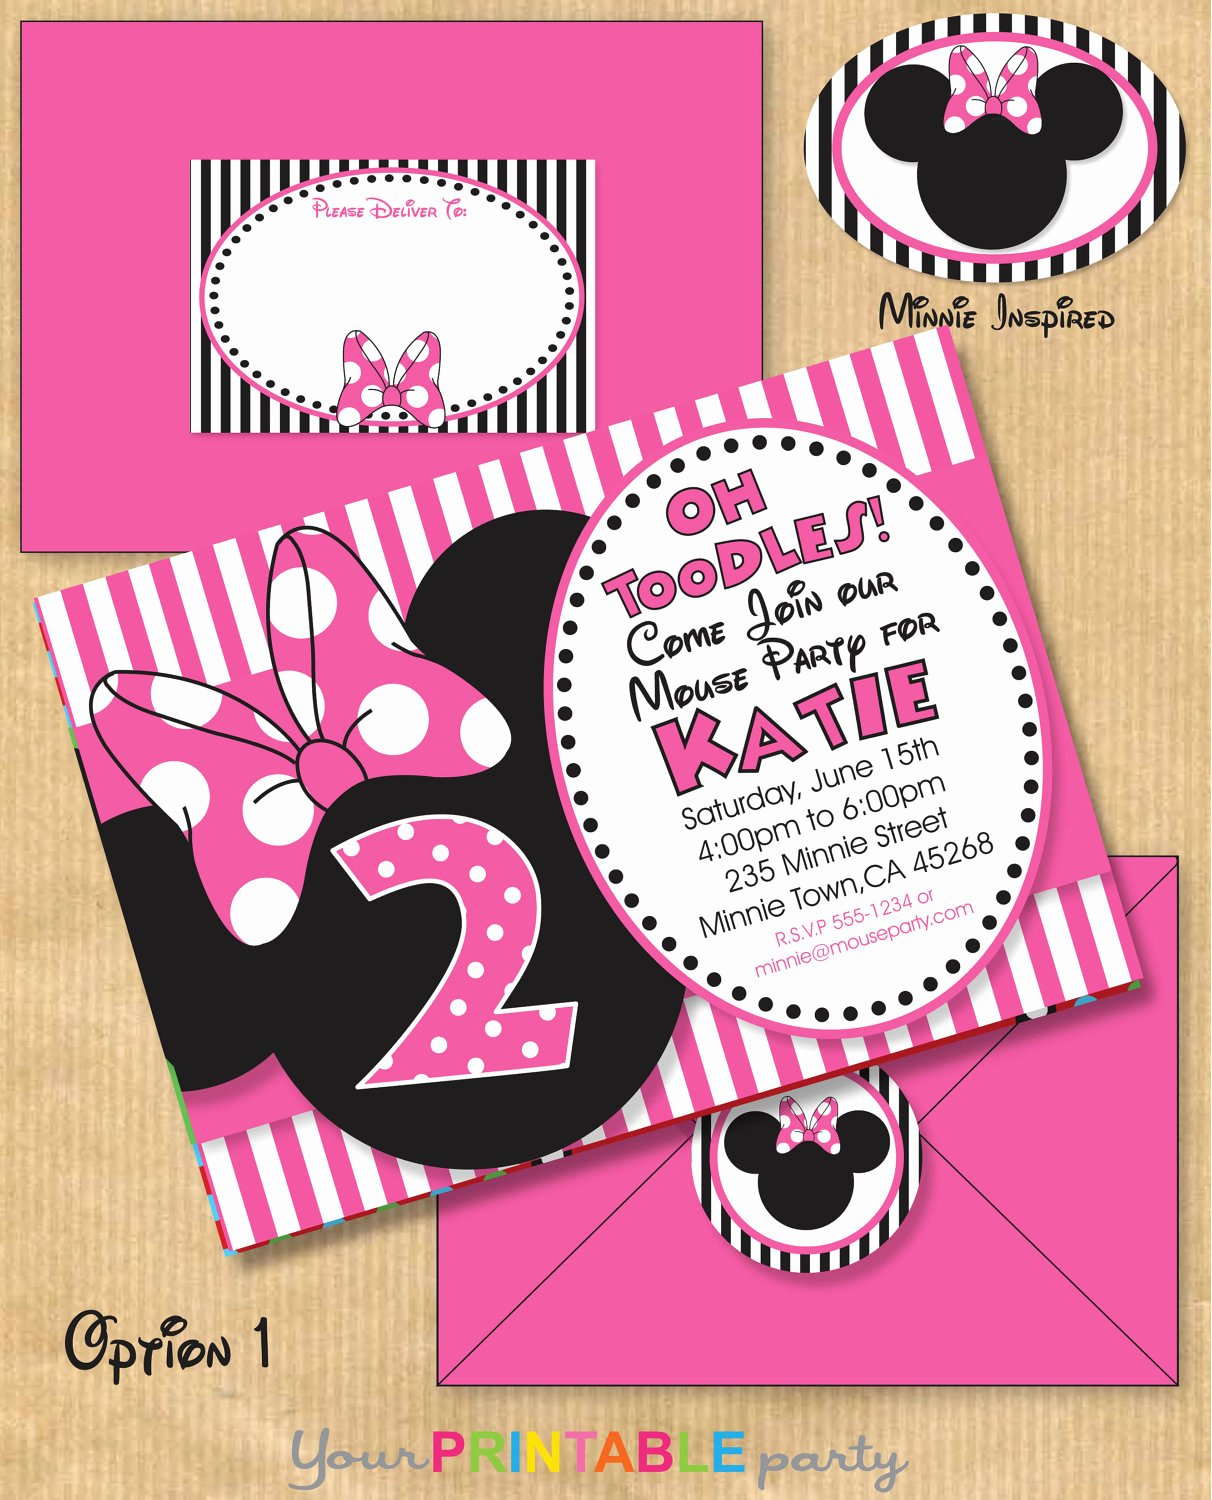 Minnie Mouse Birthday Invitation Wording Beautiful Minnie Mouse Inspired Birthday Party by Yourprintableparty